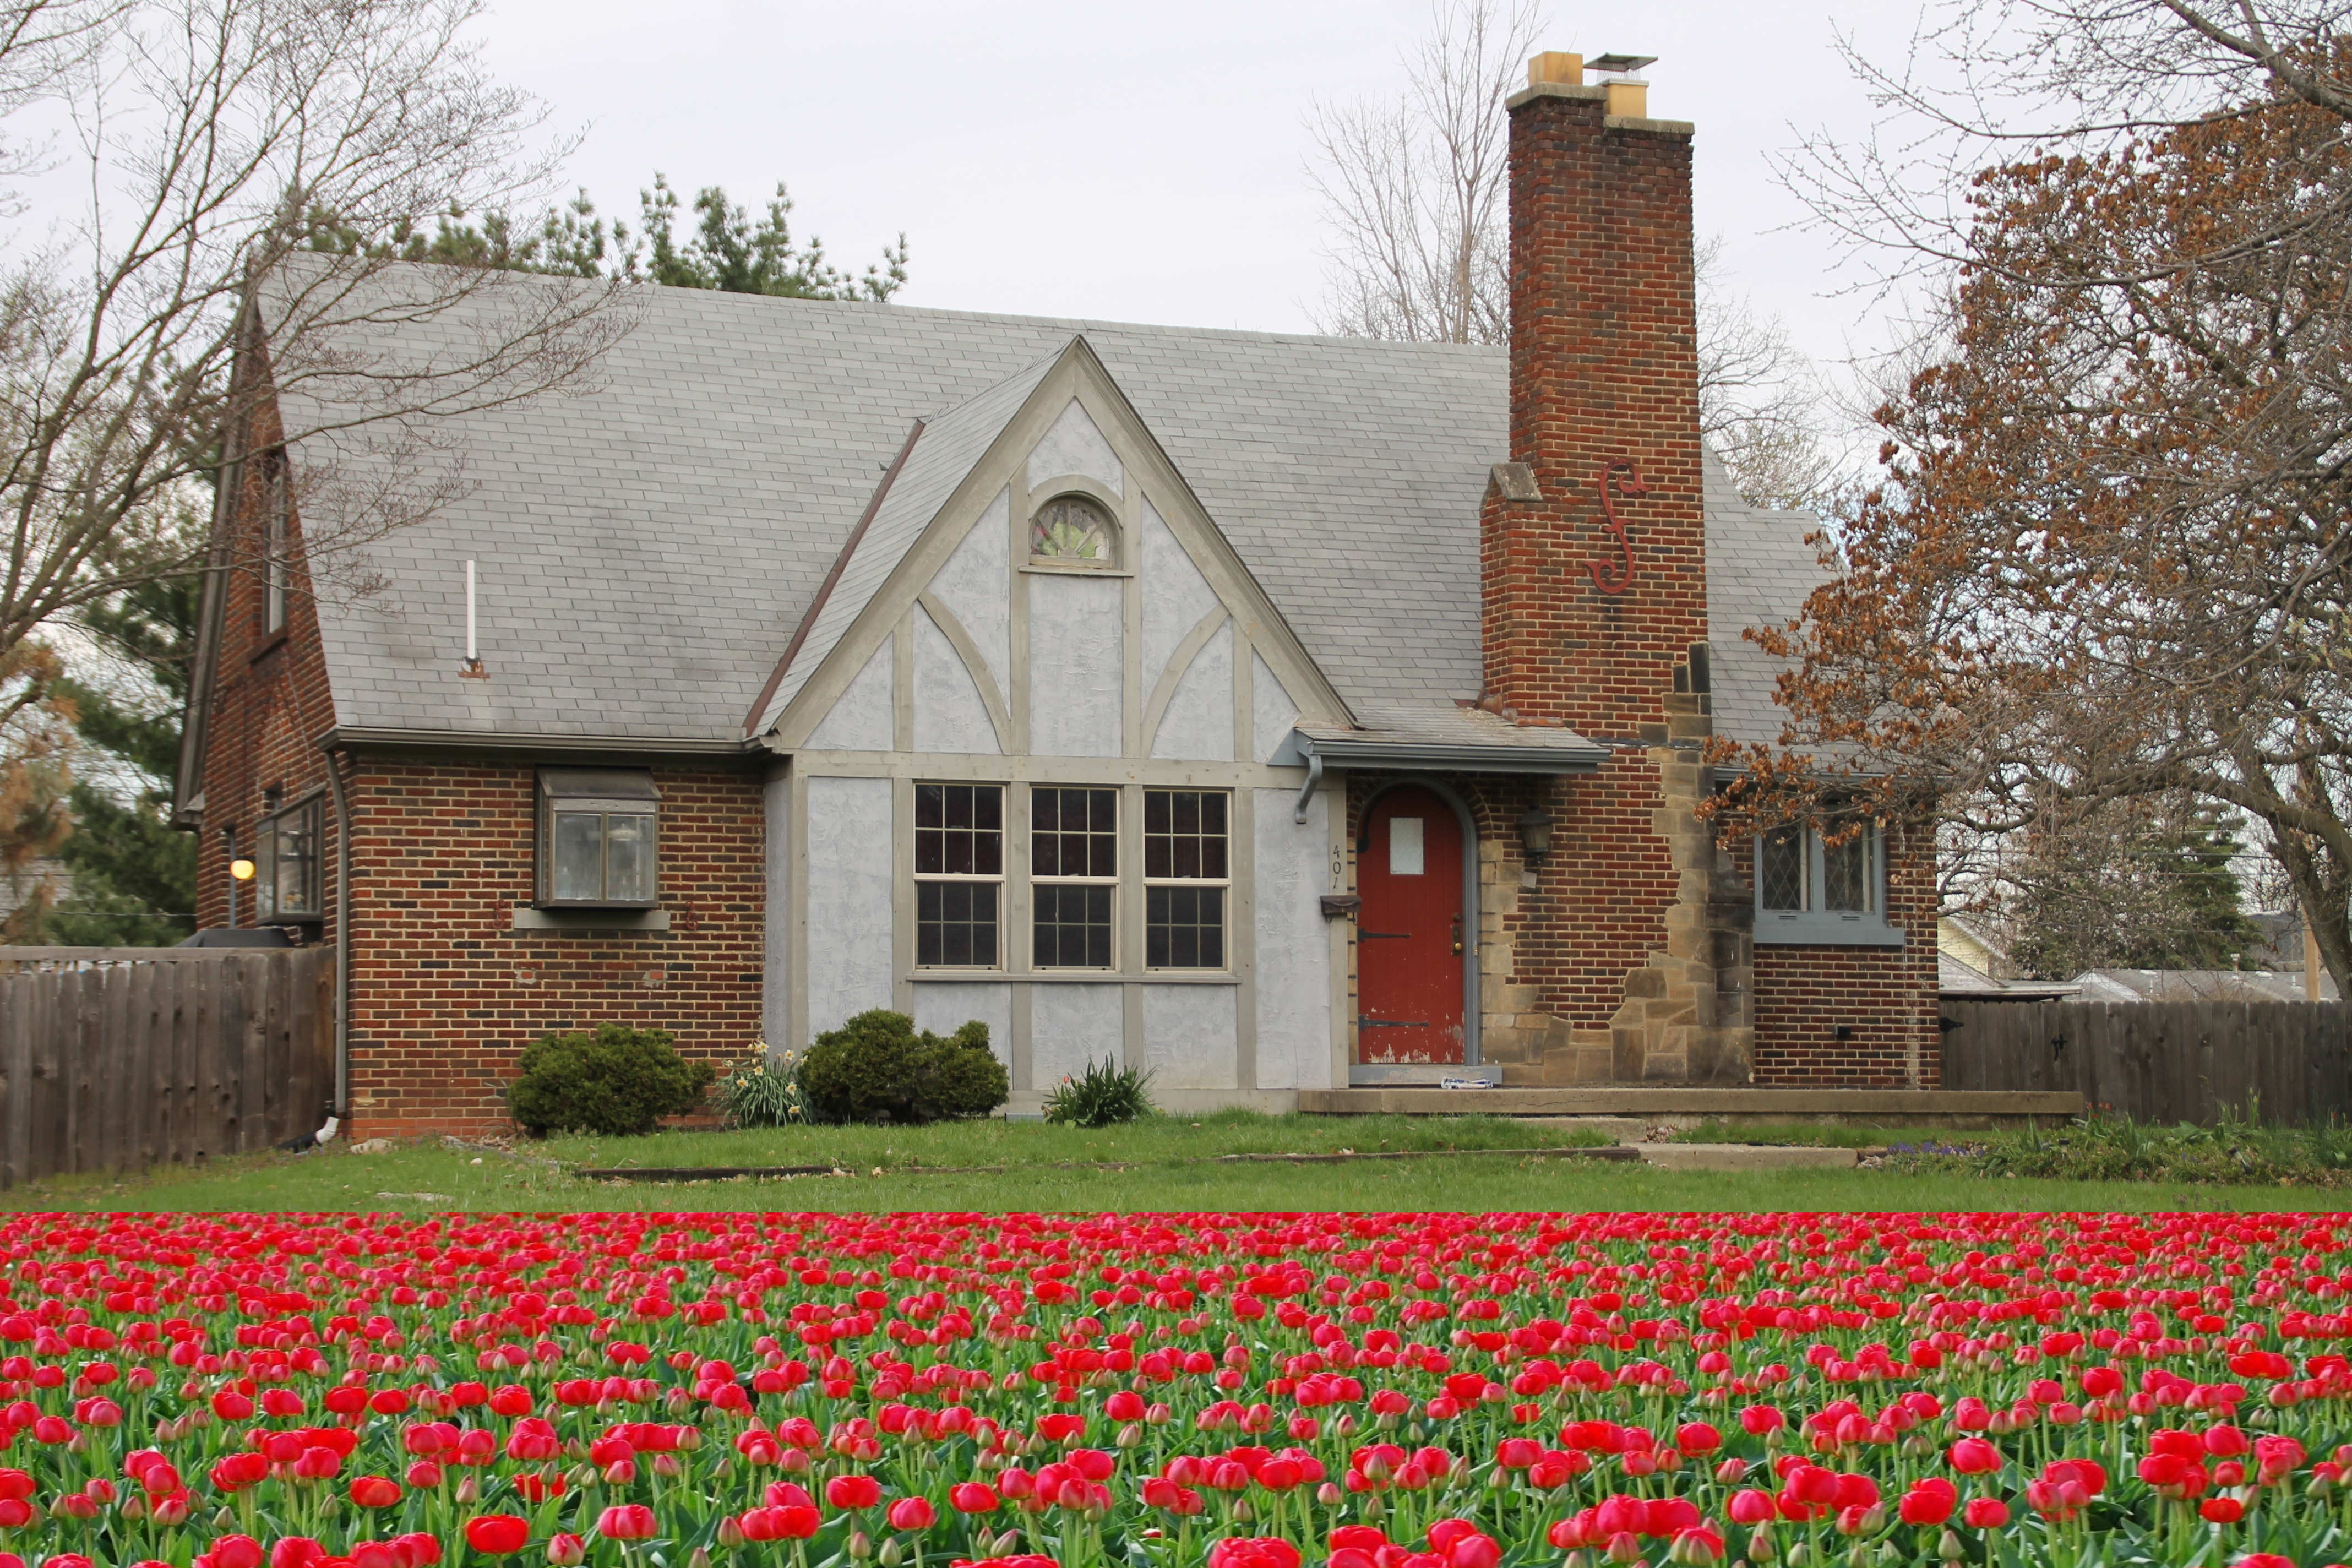 401 Woodland Ave Columbus OH with tulips